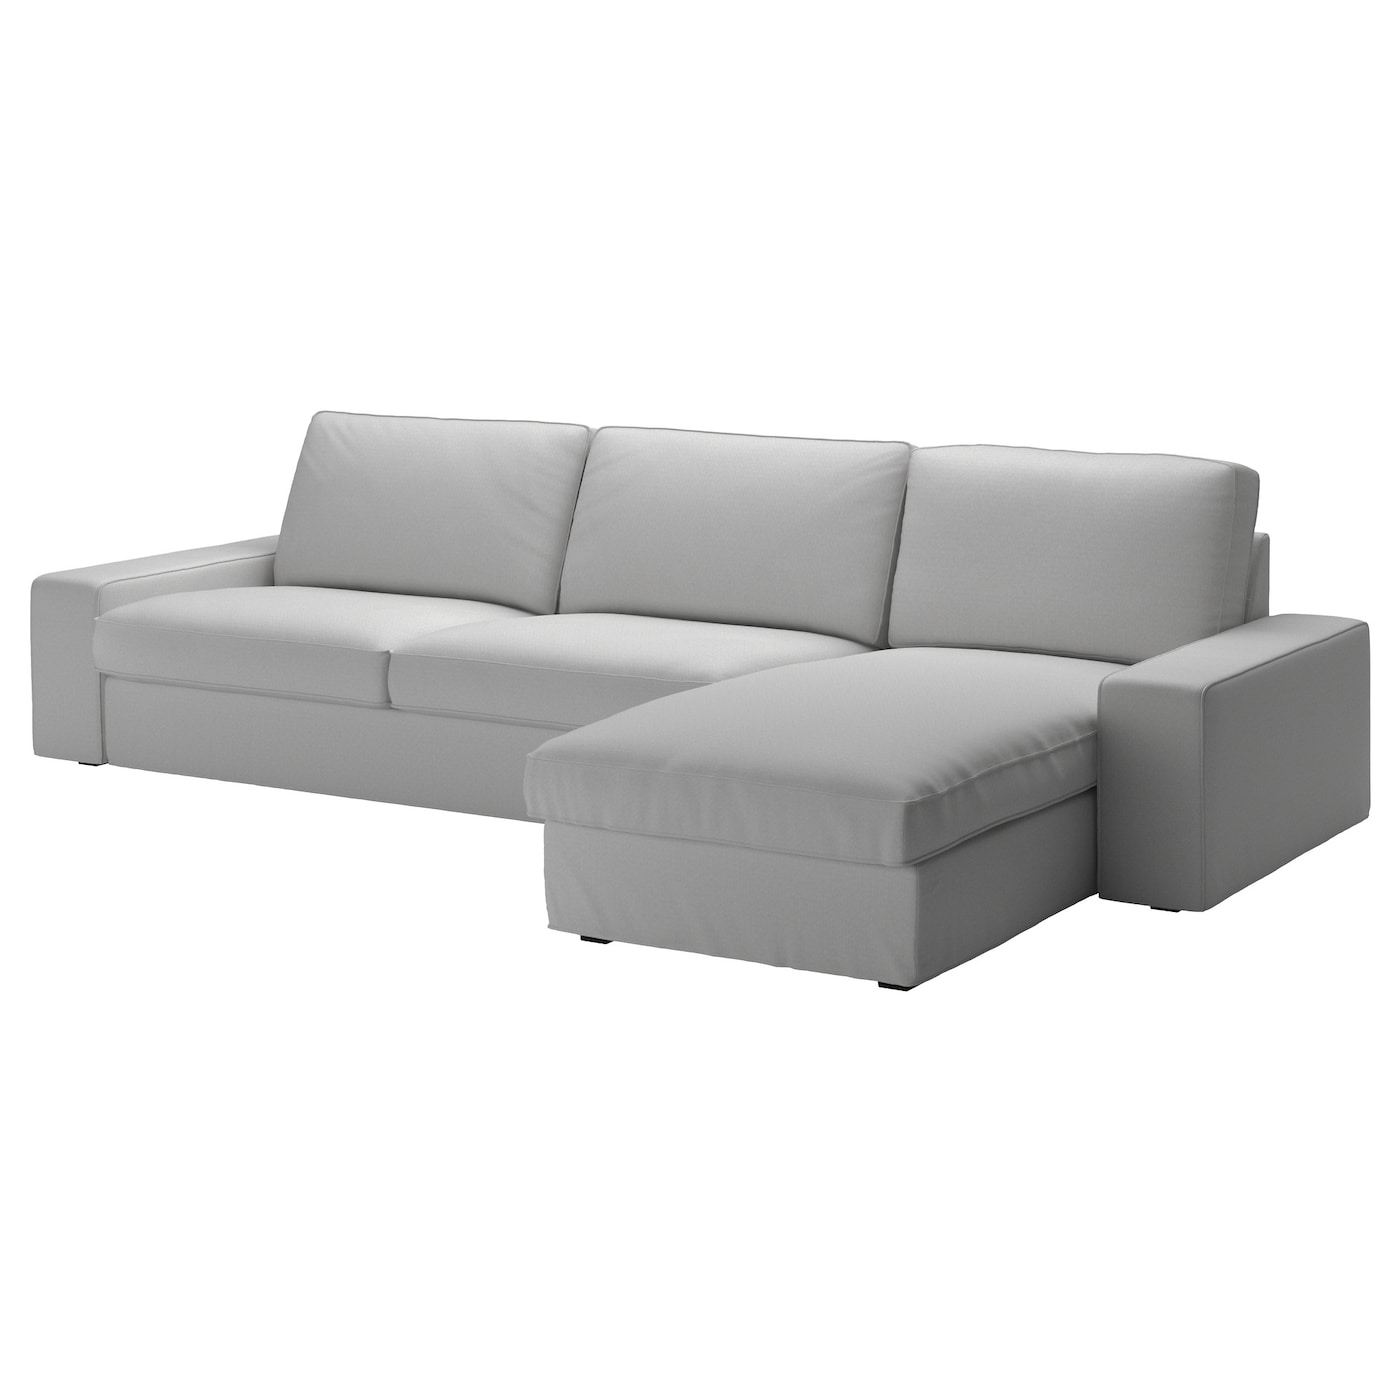 4 Seat With Chaise Orrsta Light Gray